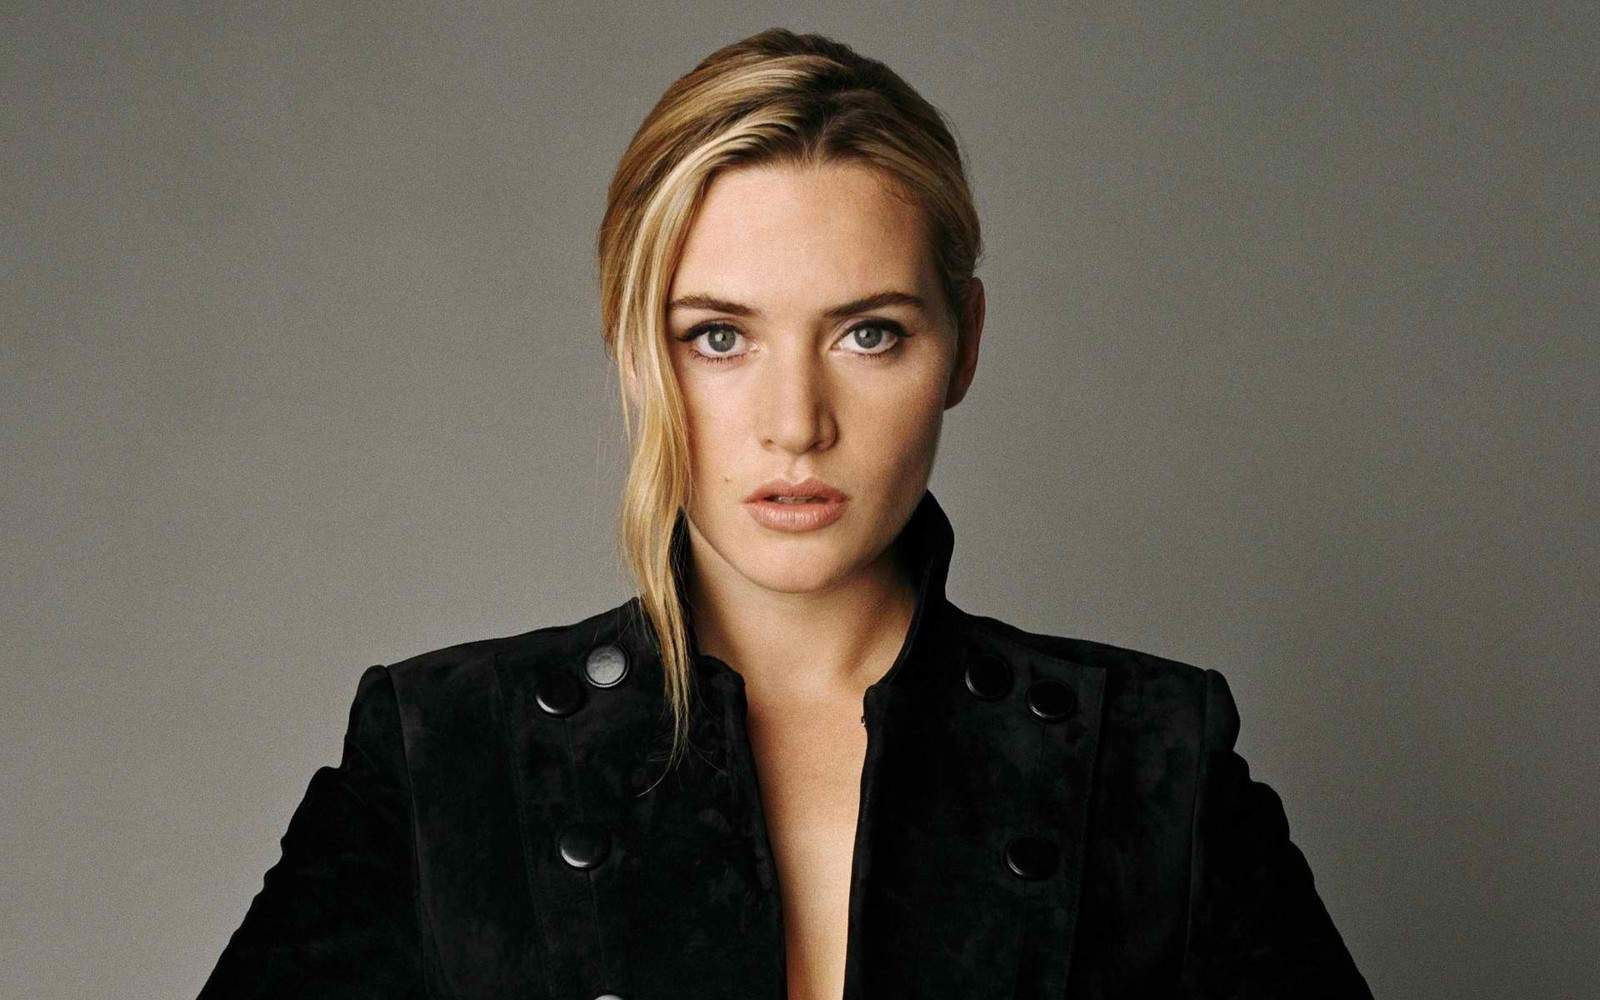 film reviews | movies | features | BRWC Kate Winslet's Period Dramas